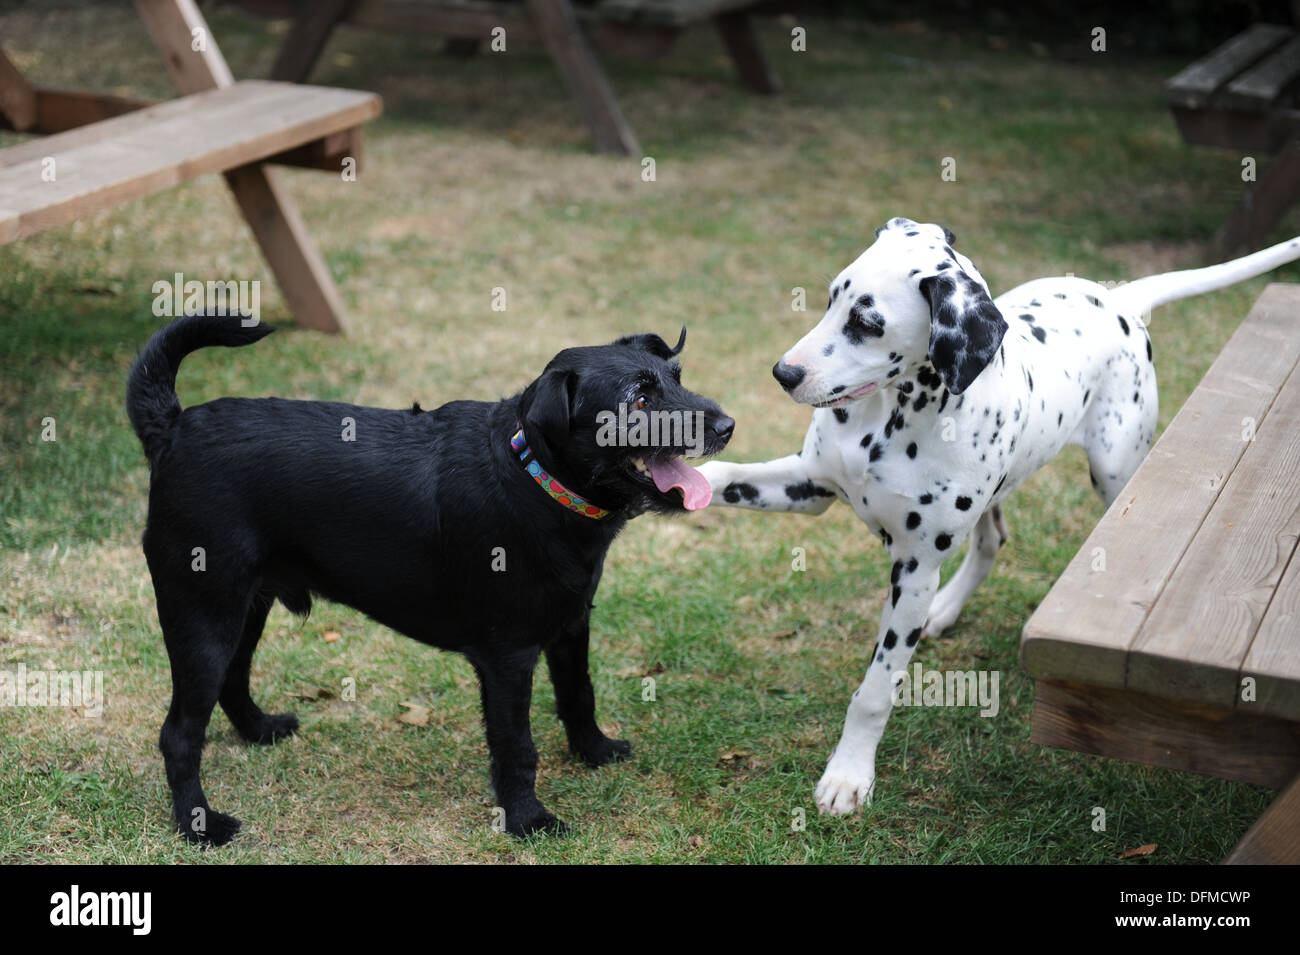 Dalmatian puppy spotty dog playing with black dog. Cute puppy playing with older dog - Stock Image